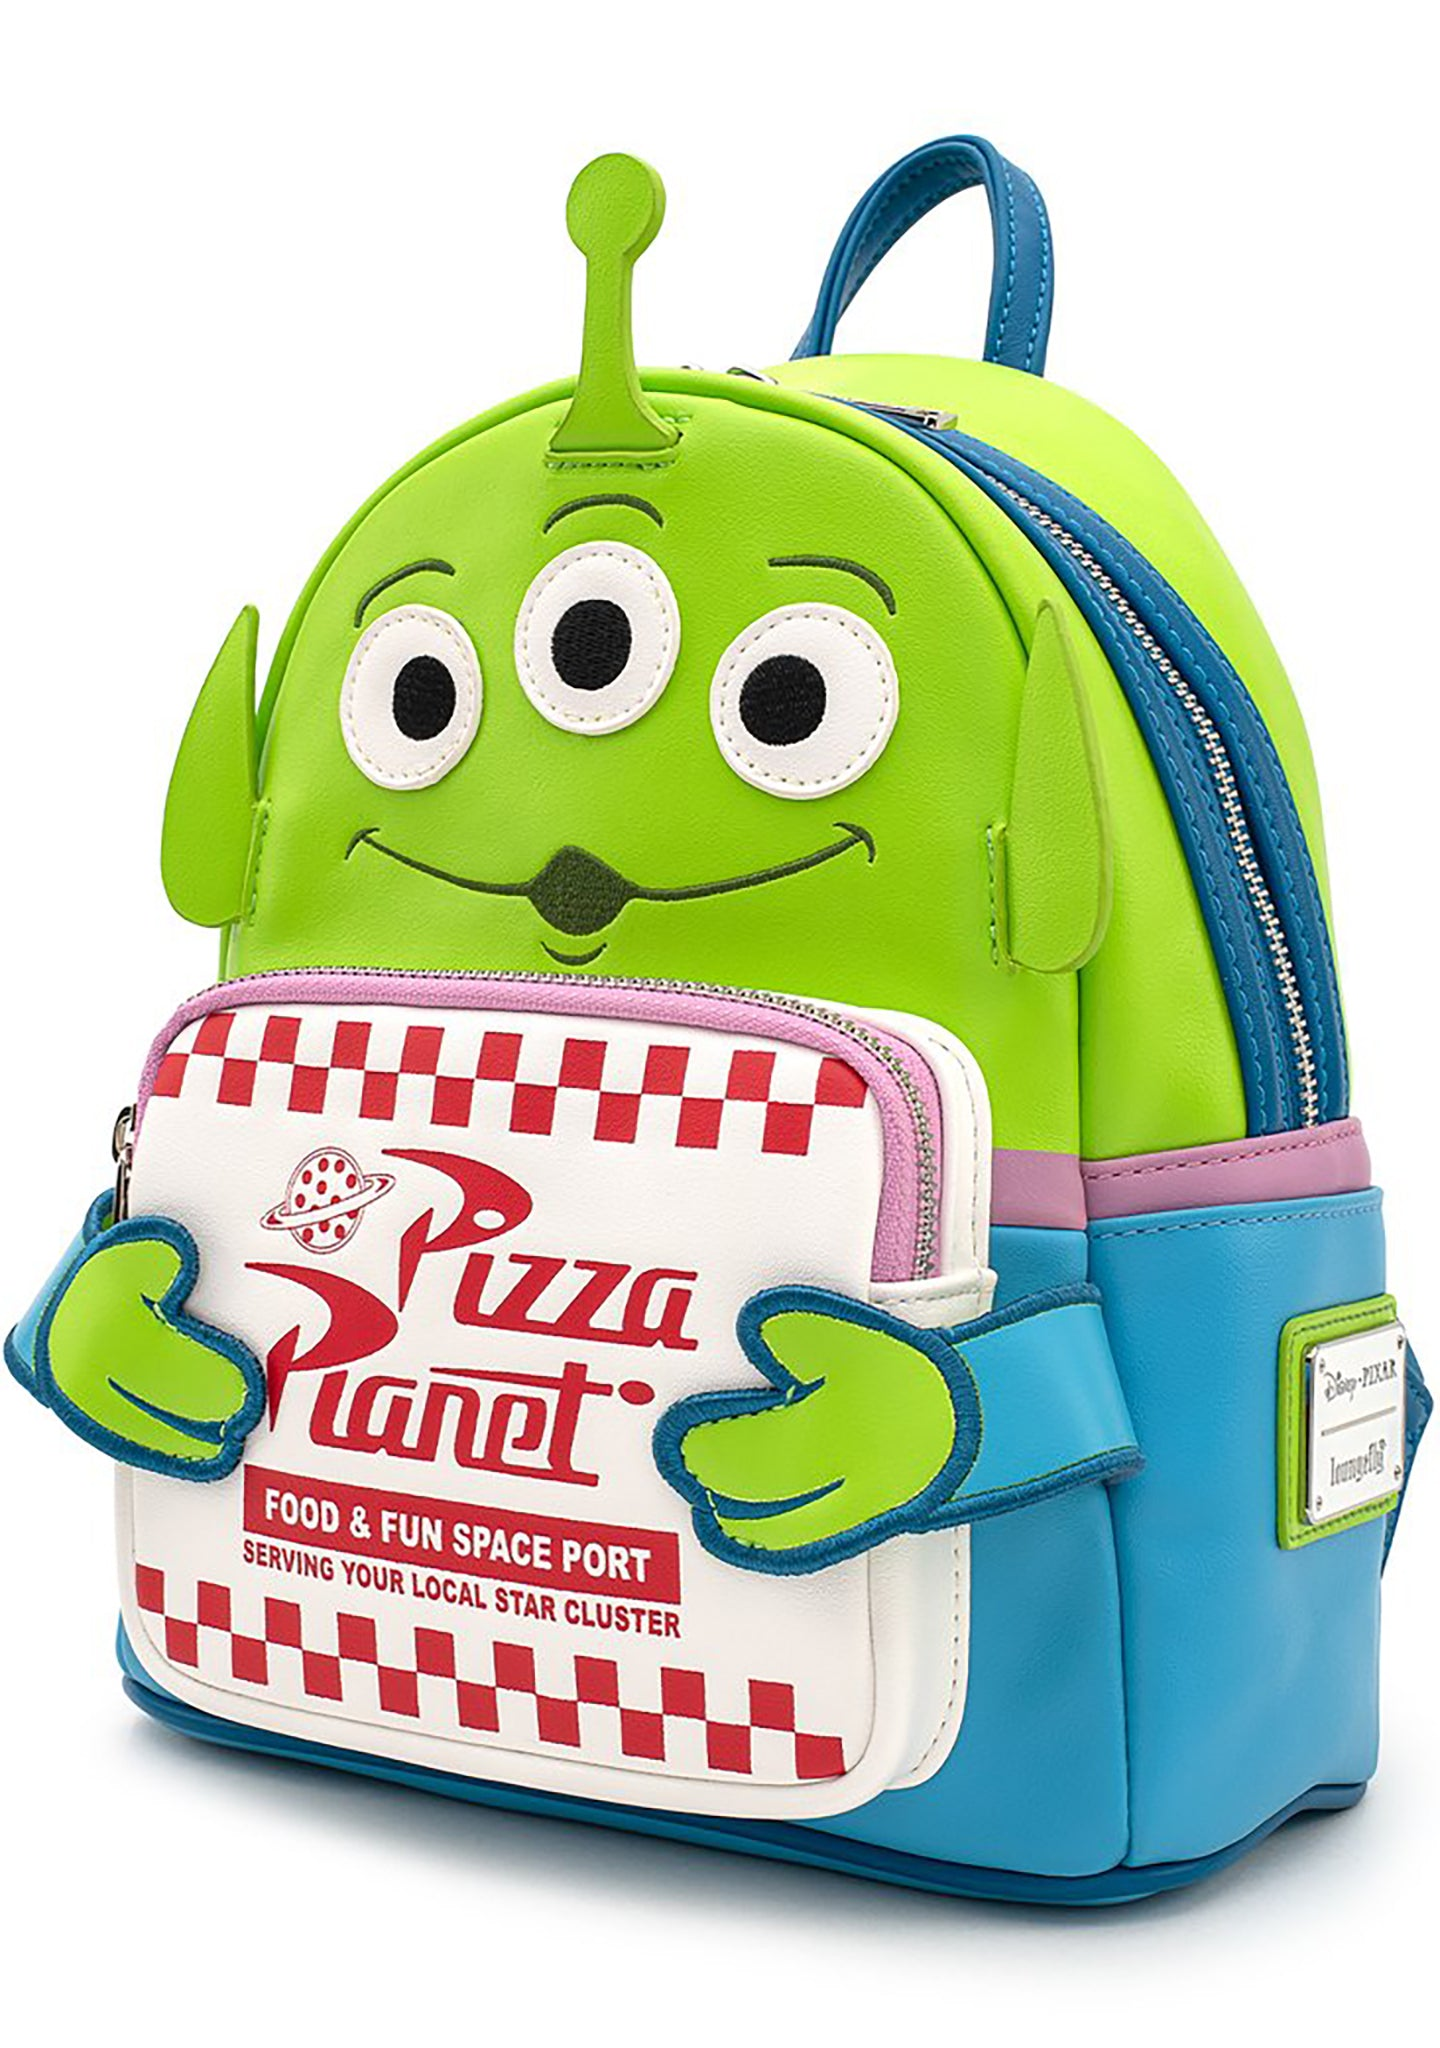 X Pixar Toy Story Pizza Planet Alien Mini Backpack